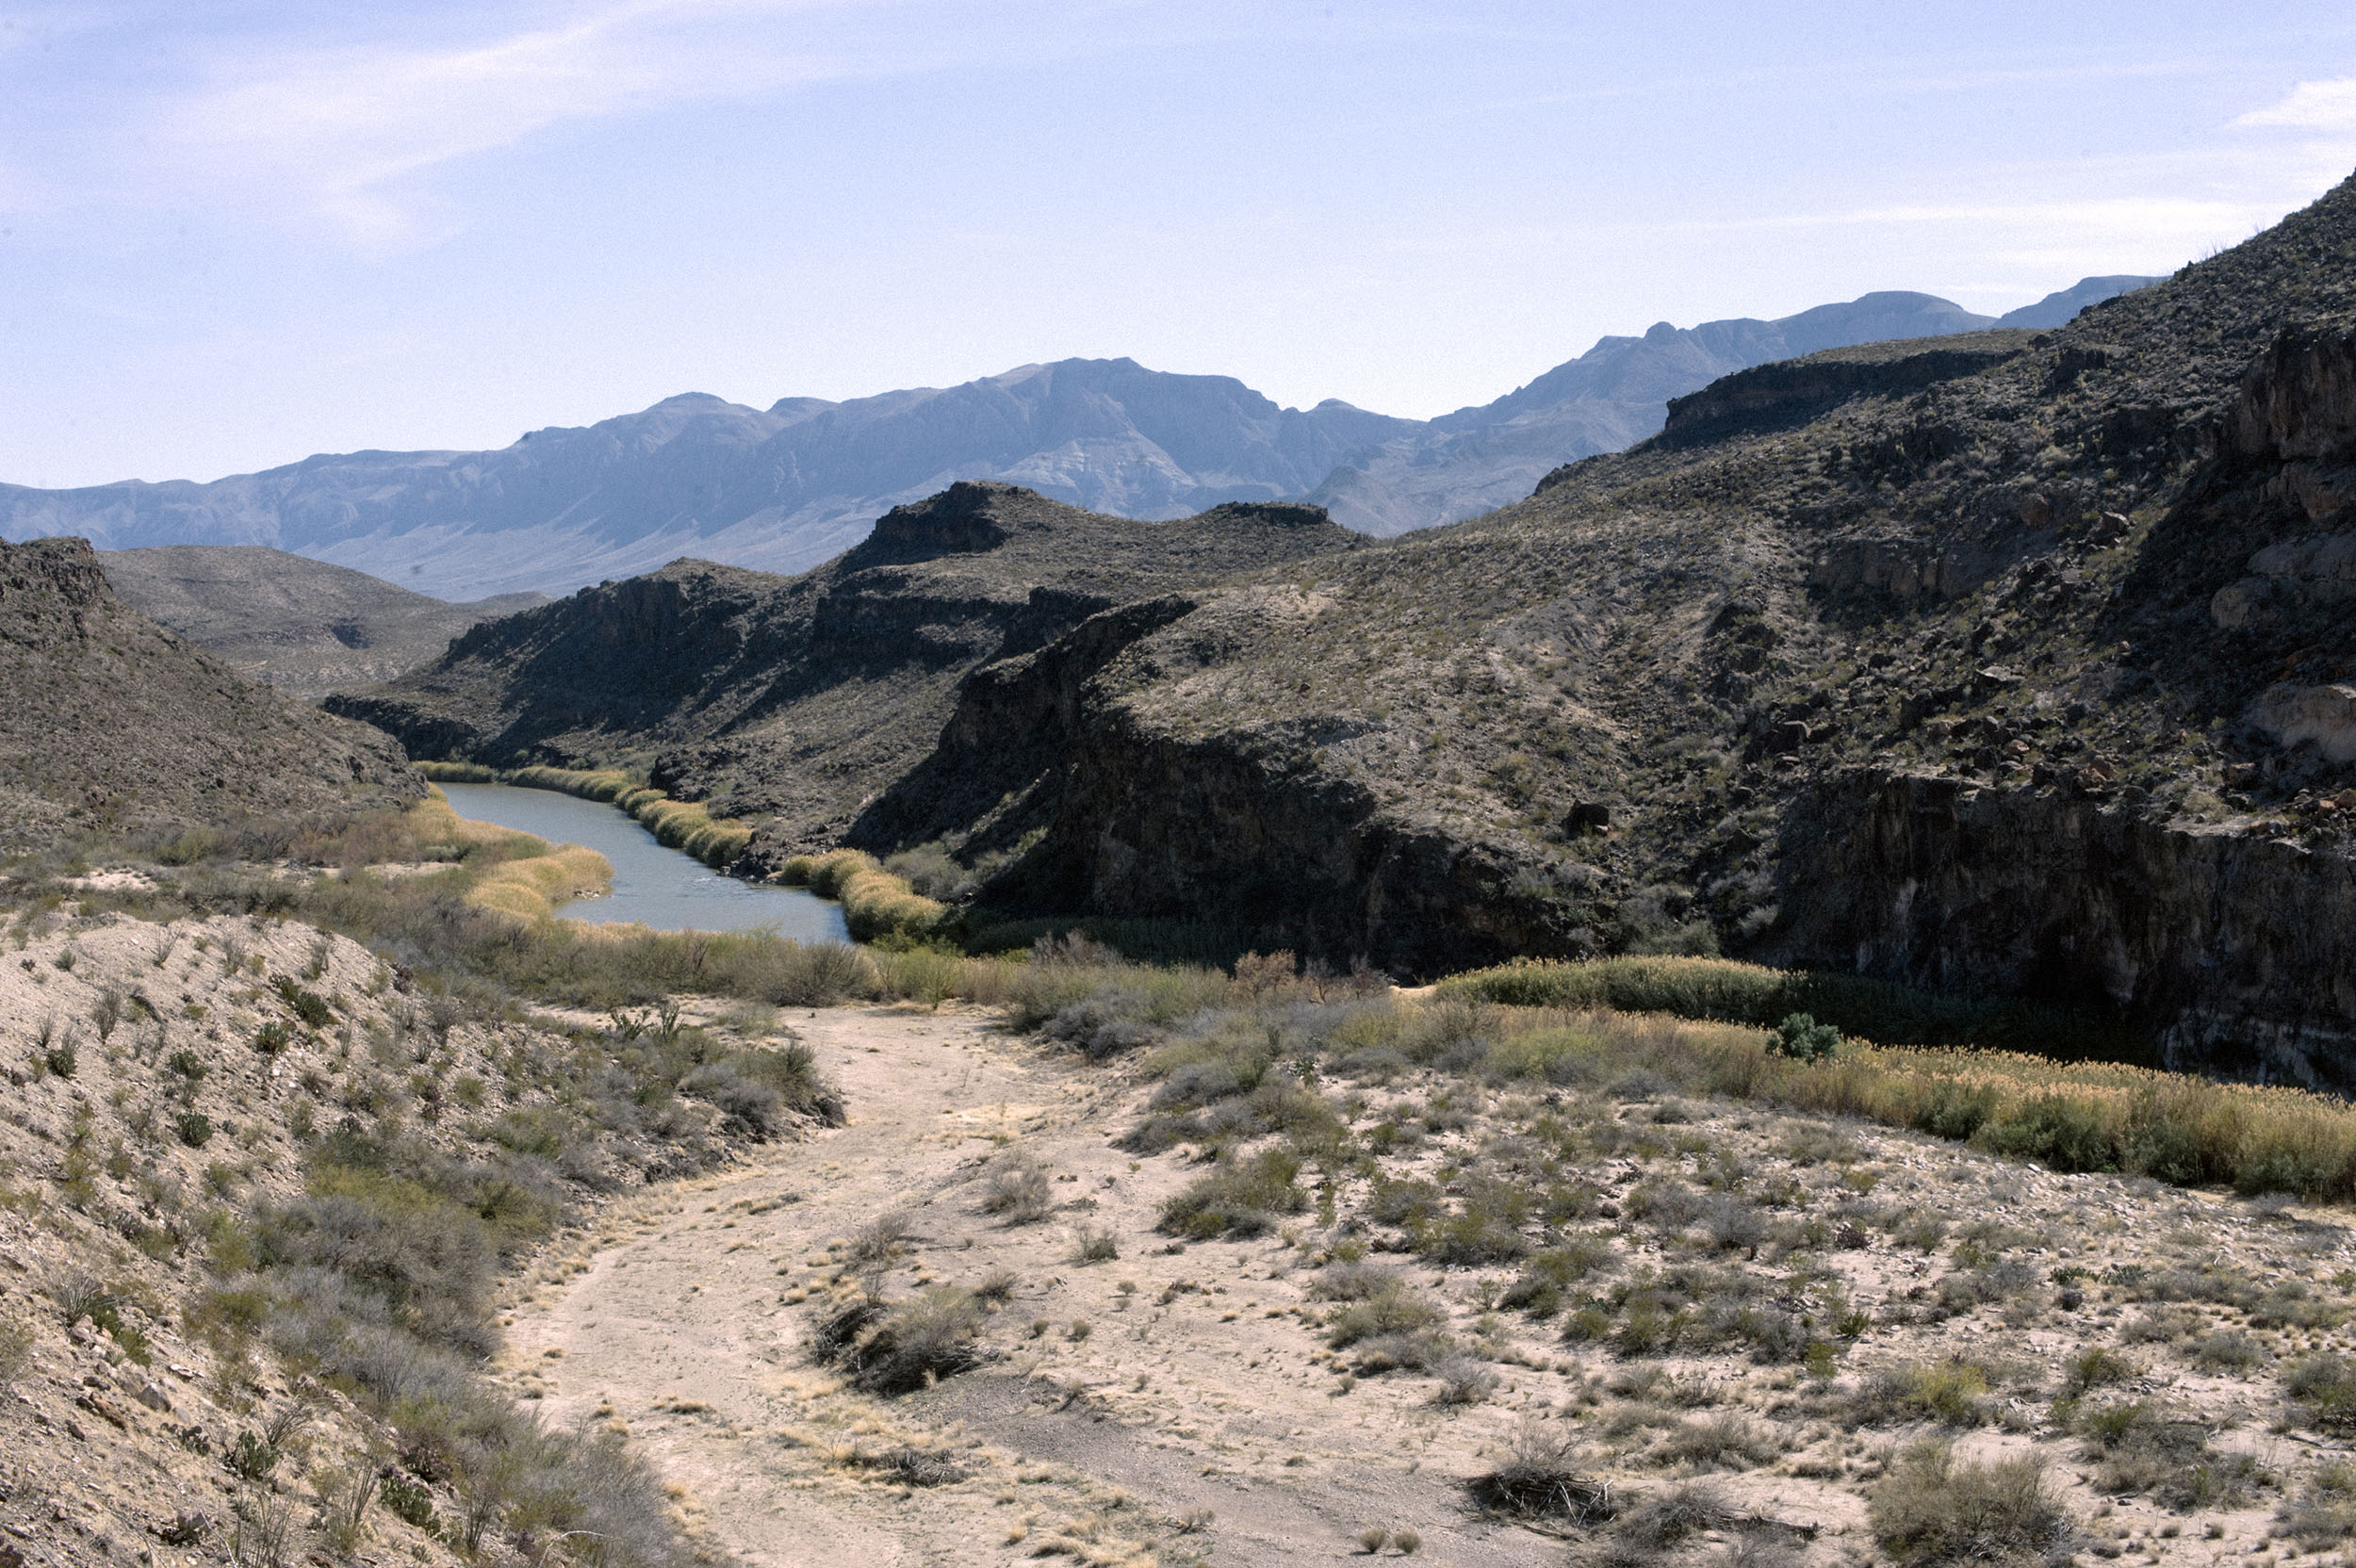 The Rio Grande separates Texas from Chihuahua, Mexico.